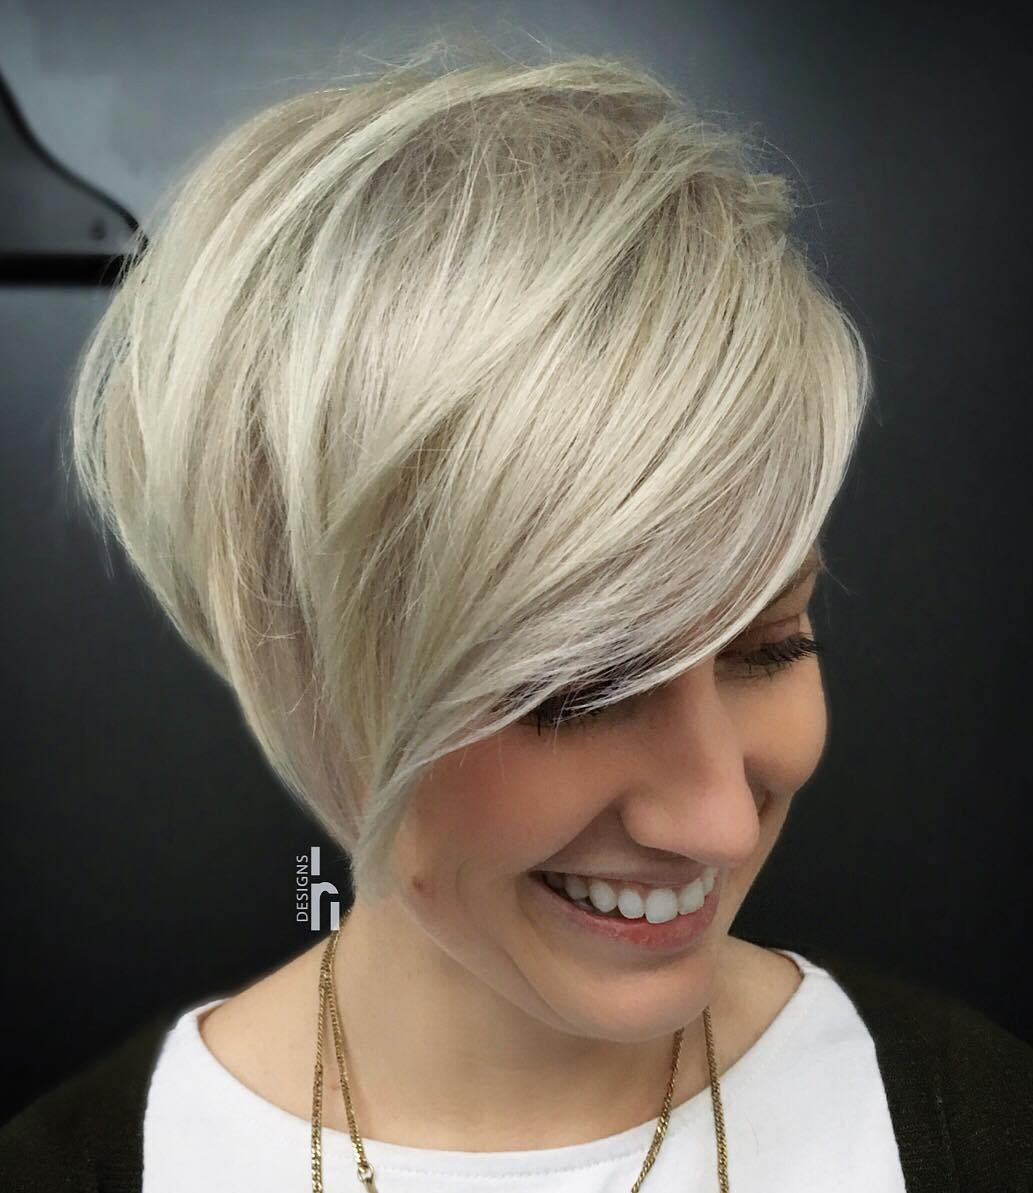 Blonde Longer Version of Pixie with Side Bangs for Fine Locks